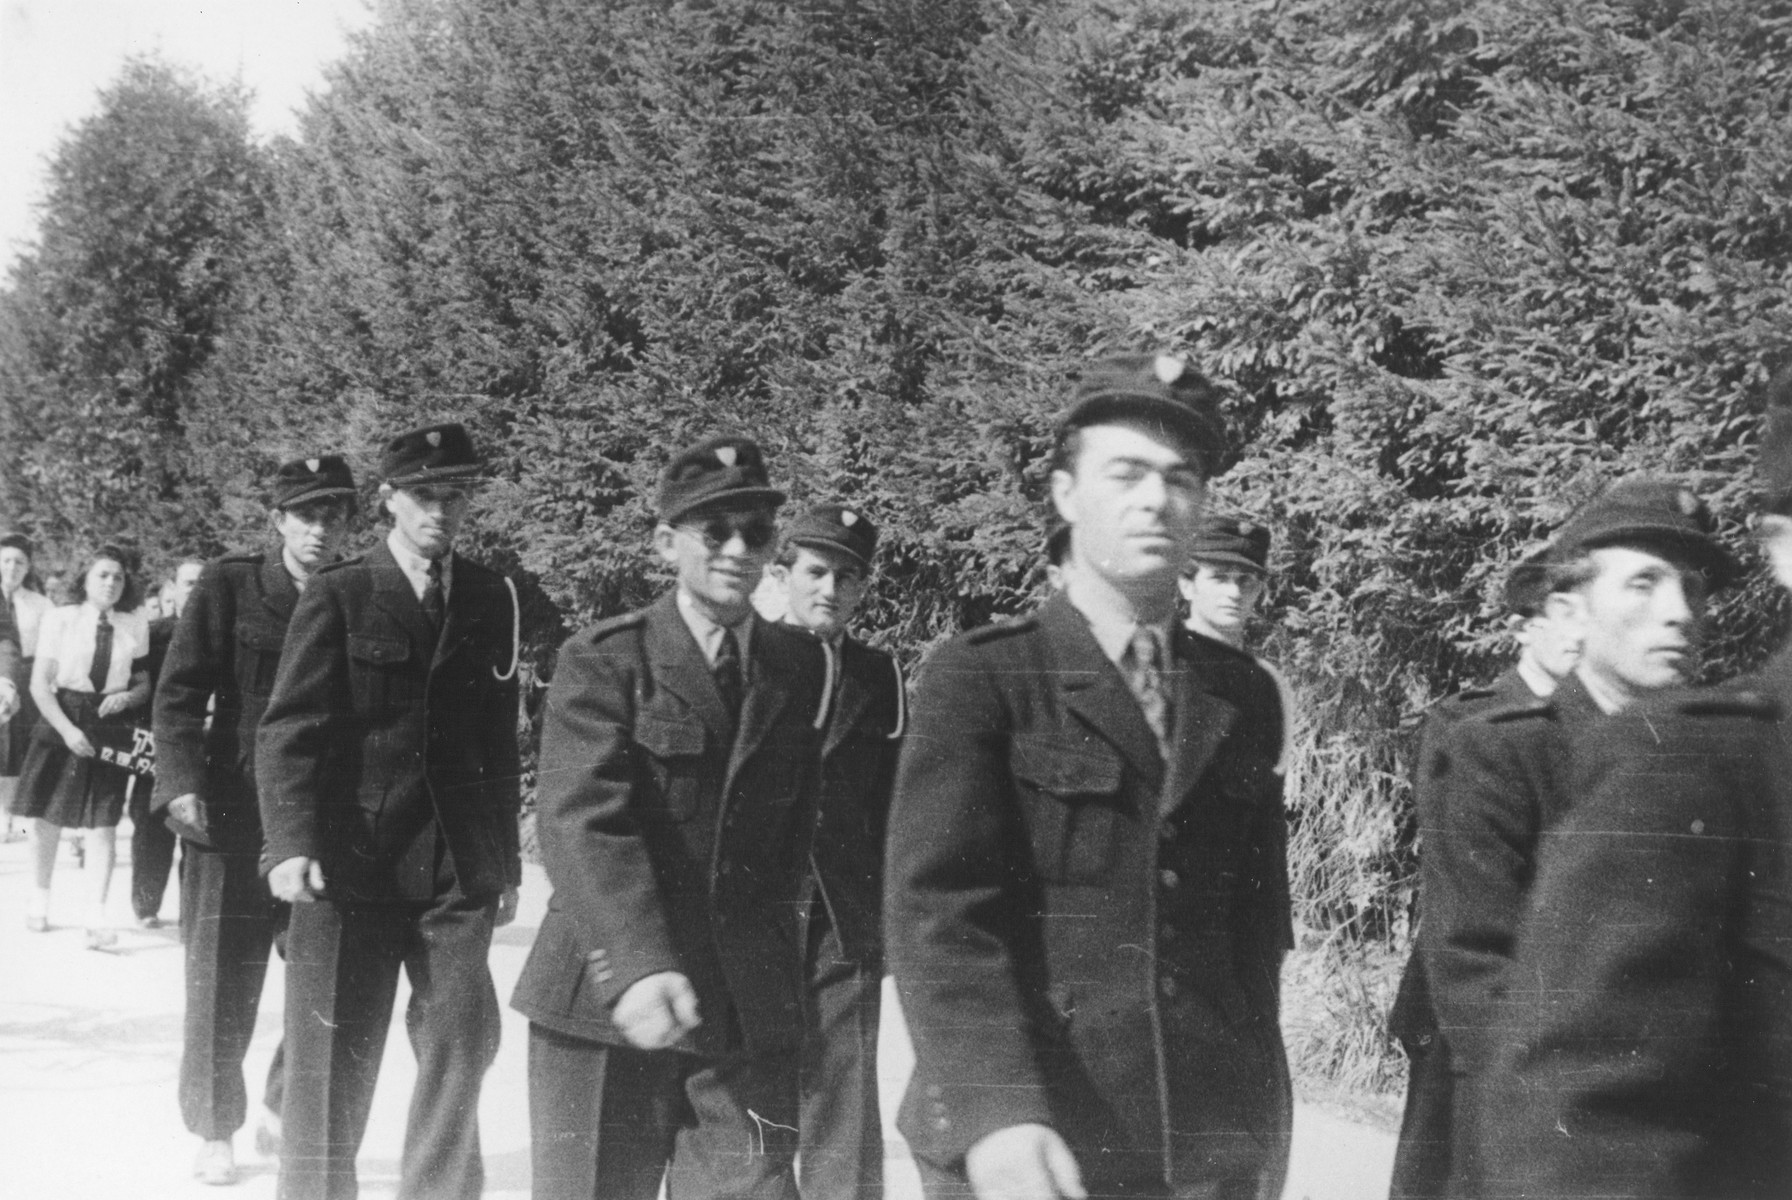 Jewish police march in a parade in the Feldafing DP camp.